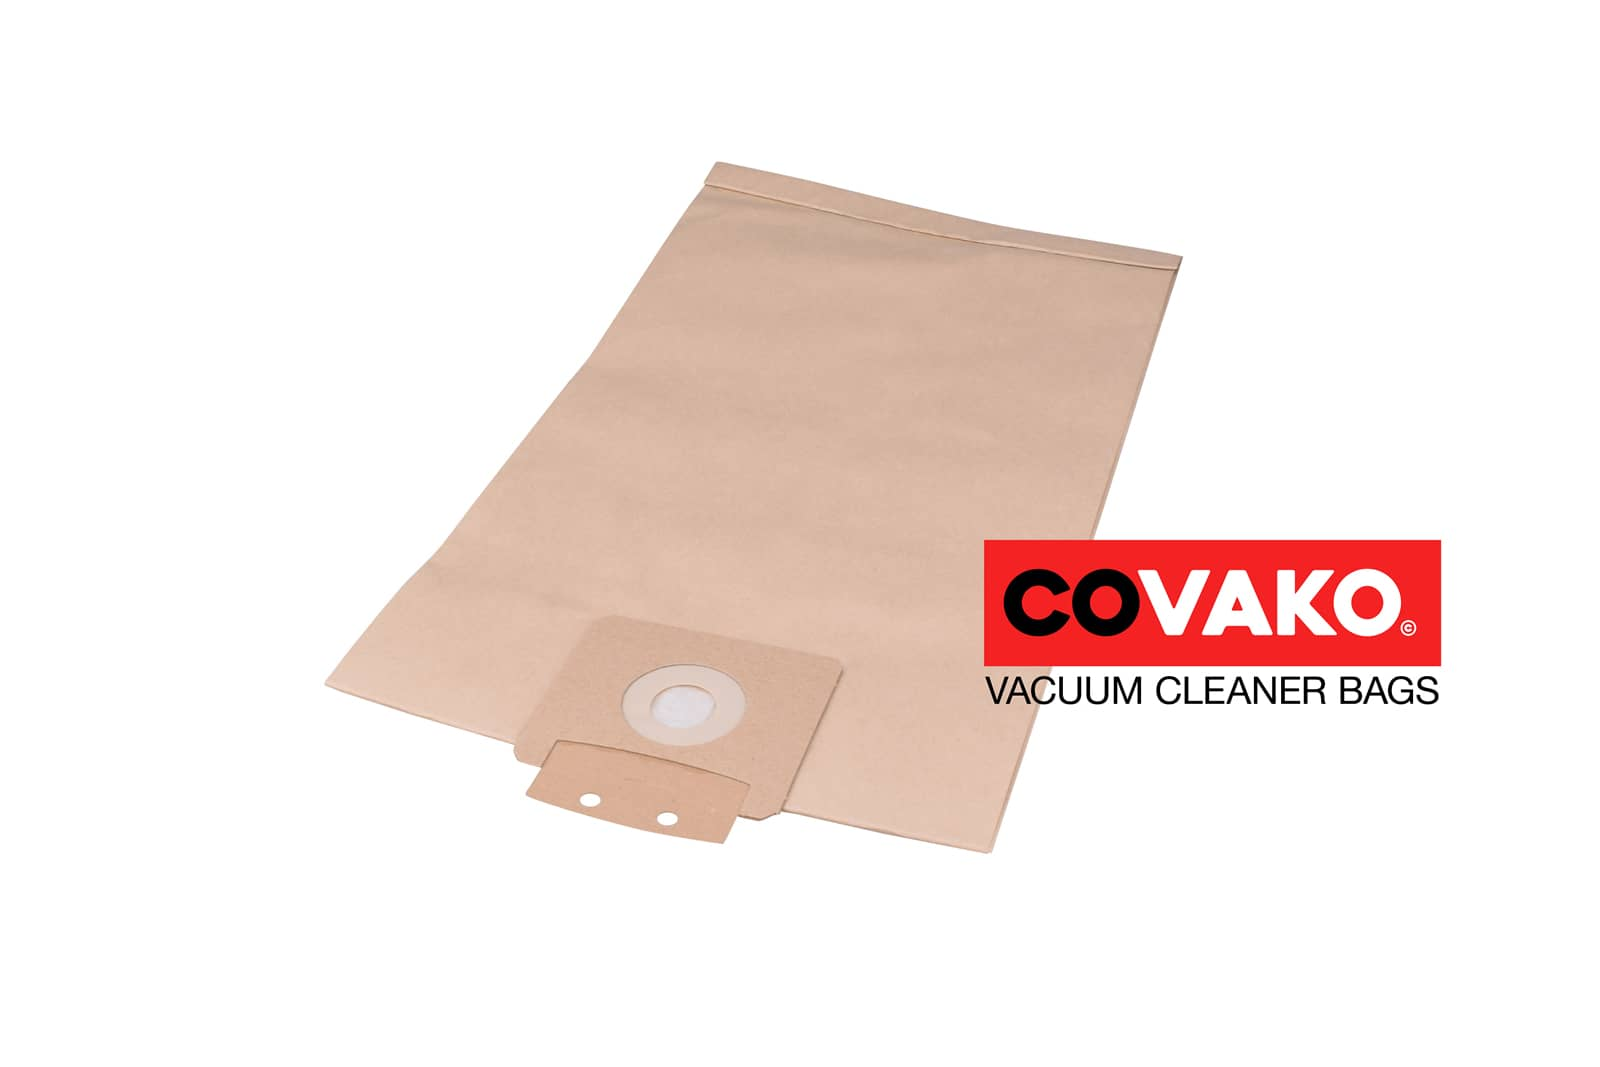 Diversy Vento 8 / Paper - Diversy vacuum cleaner bags